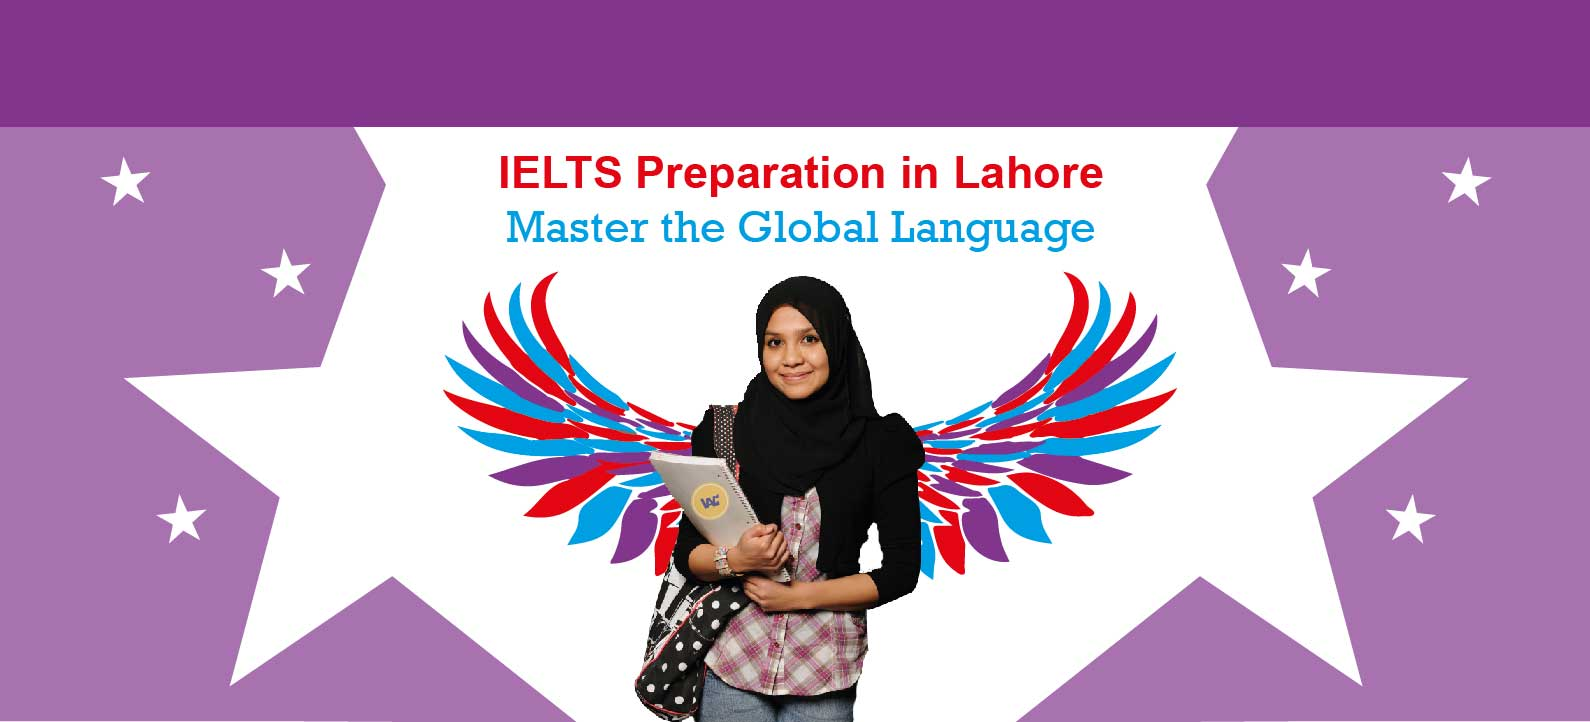 IELTS preparation in Lahore